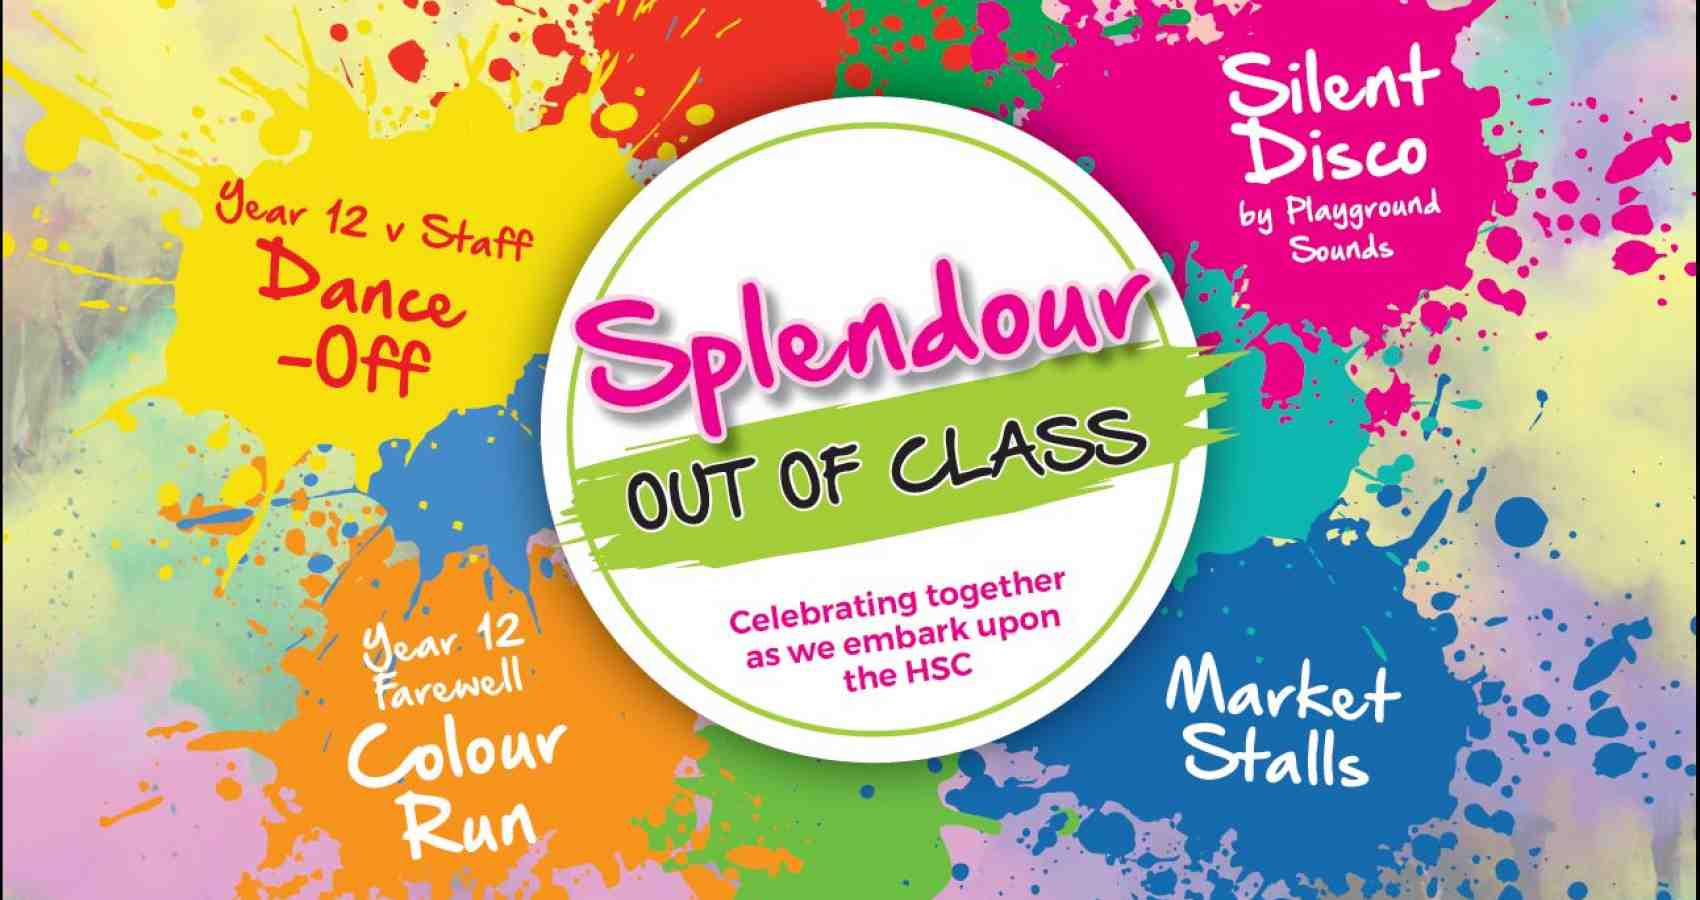 Splendour out of Class Westport Campus